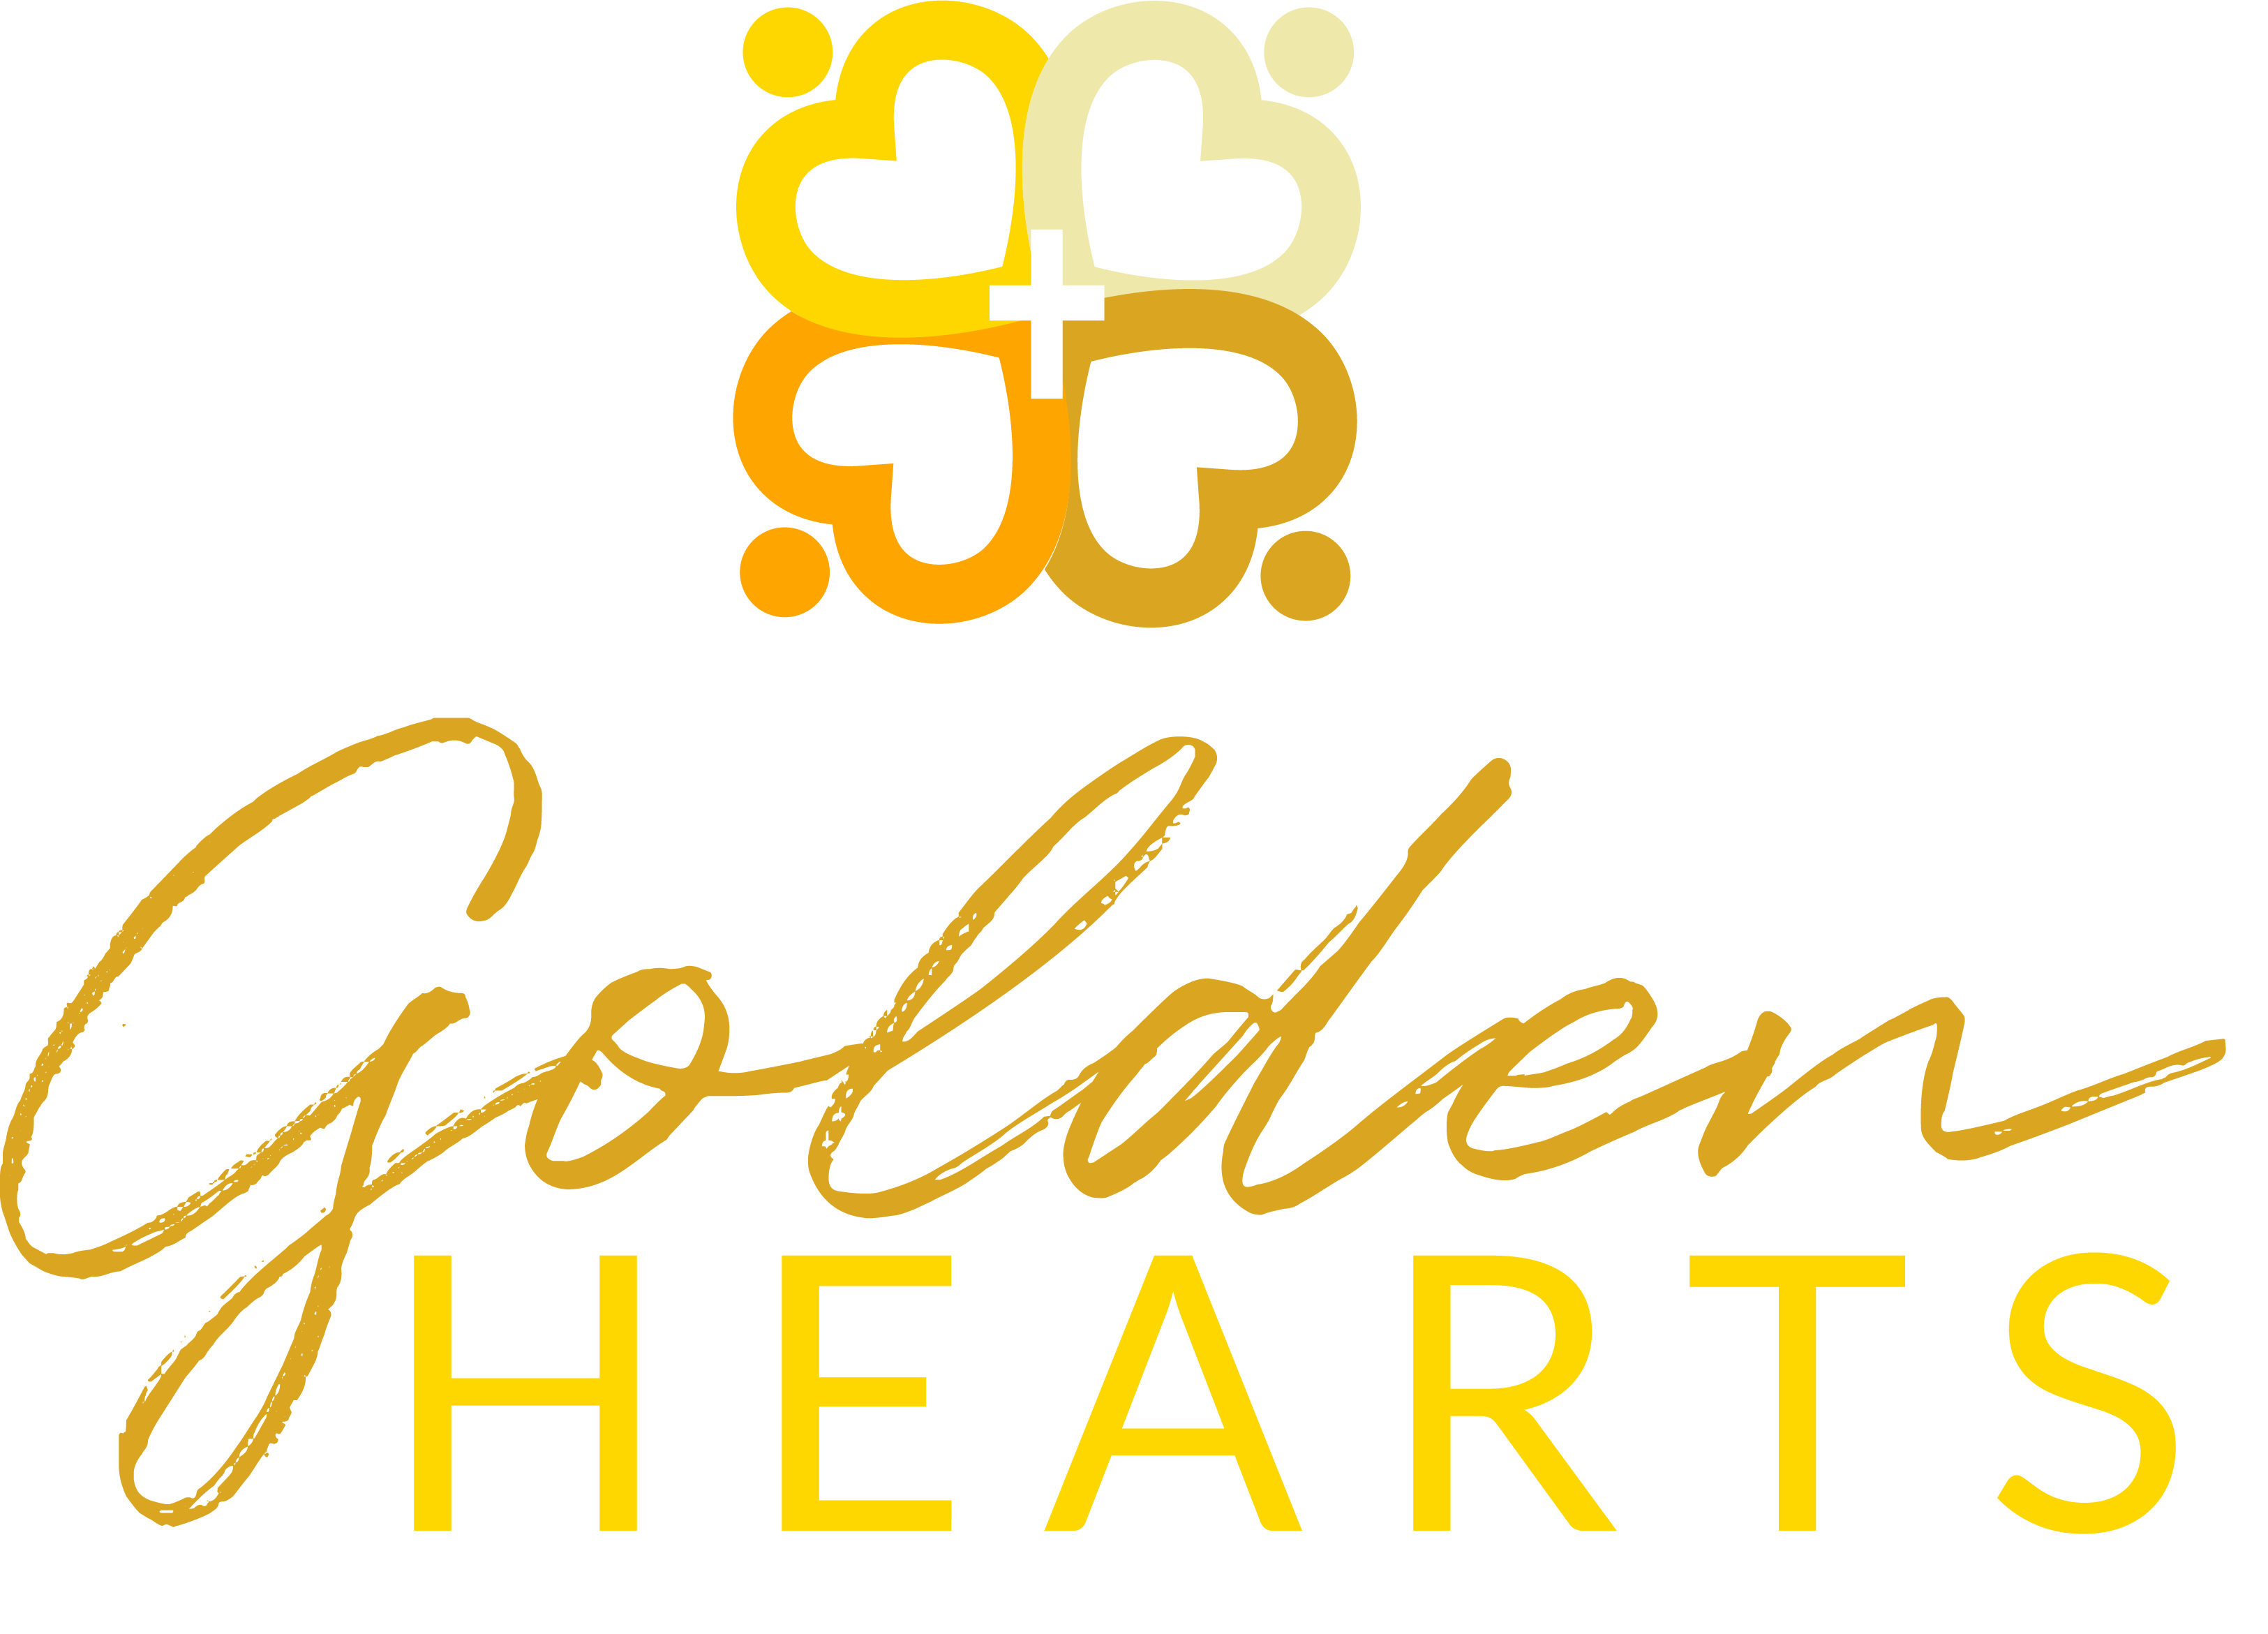 golden hearts senior adults at fairview